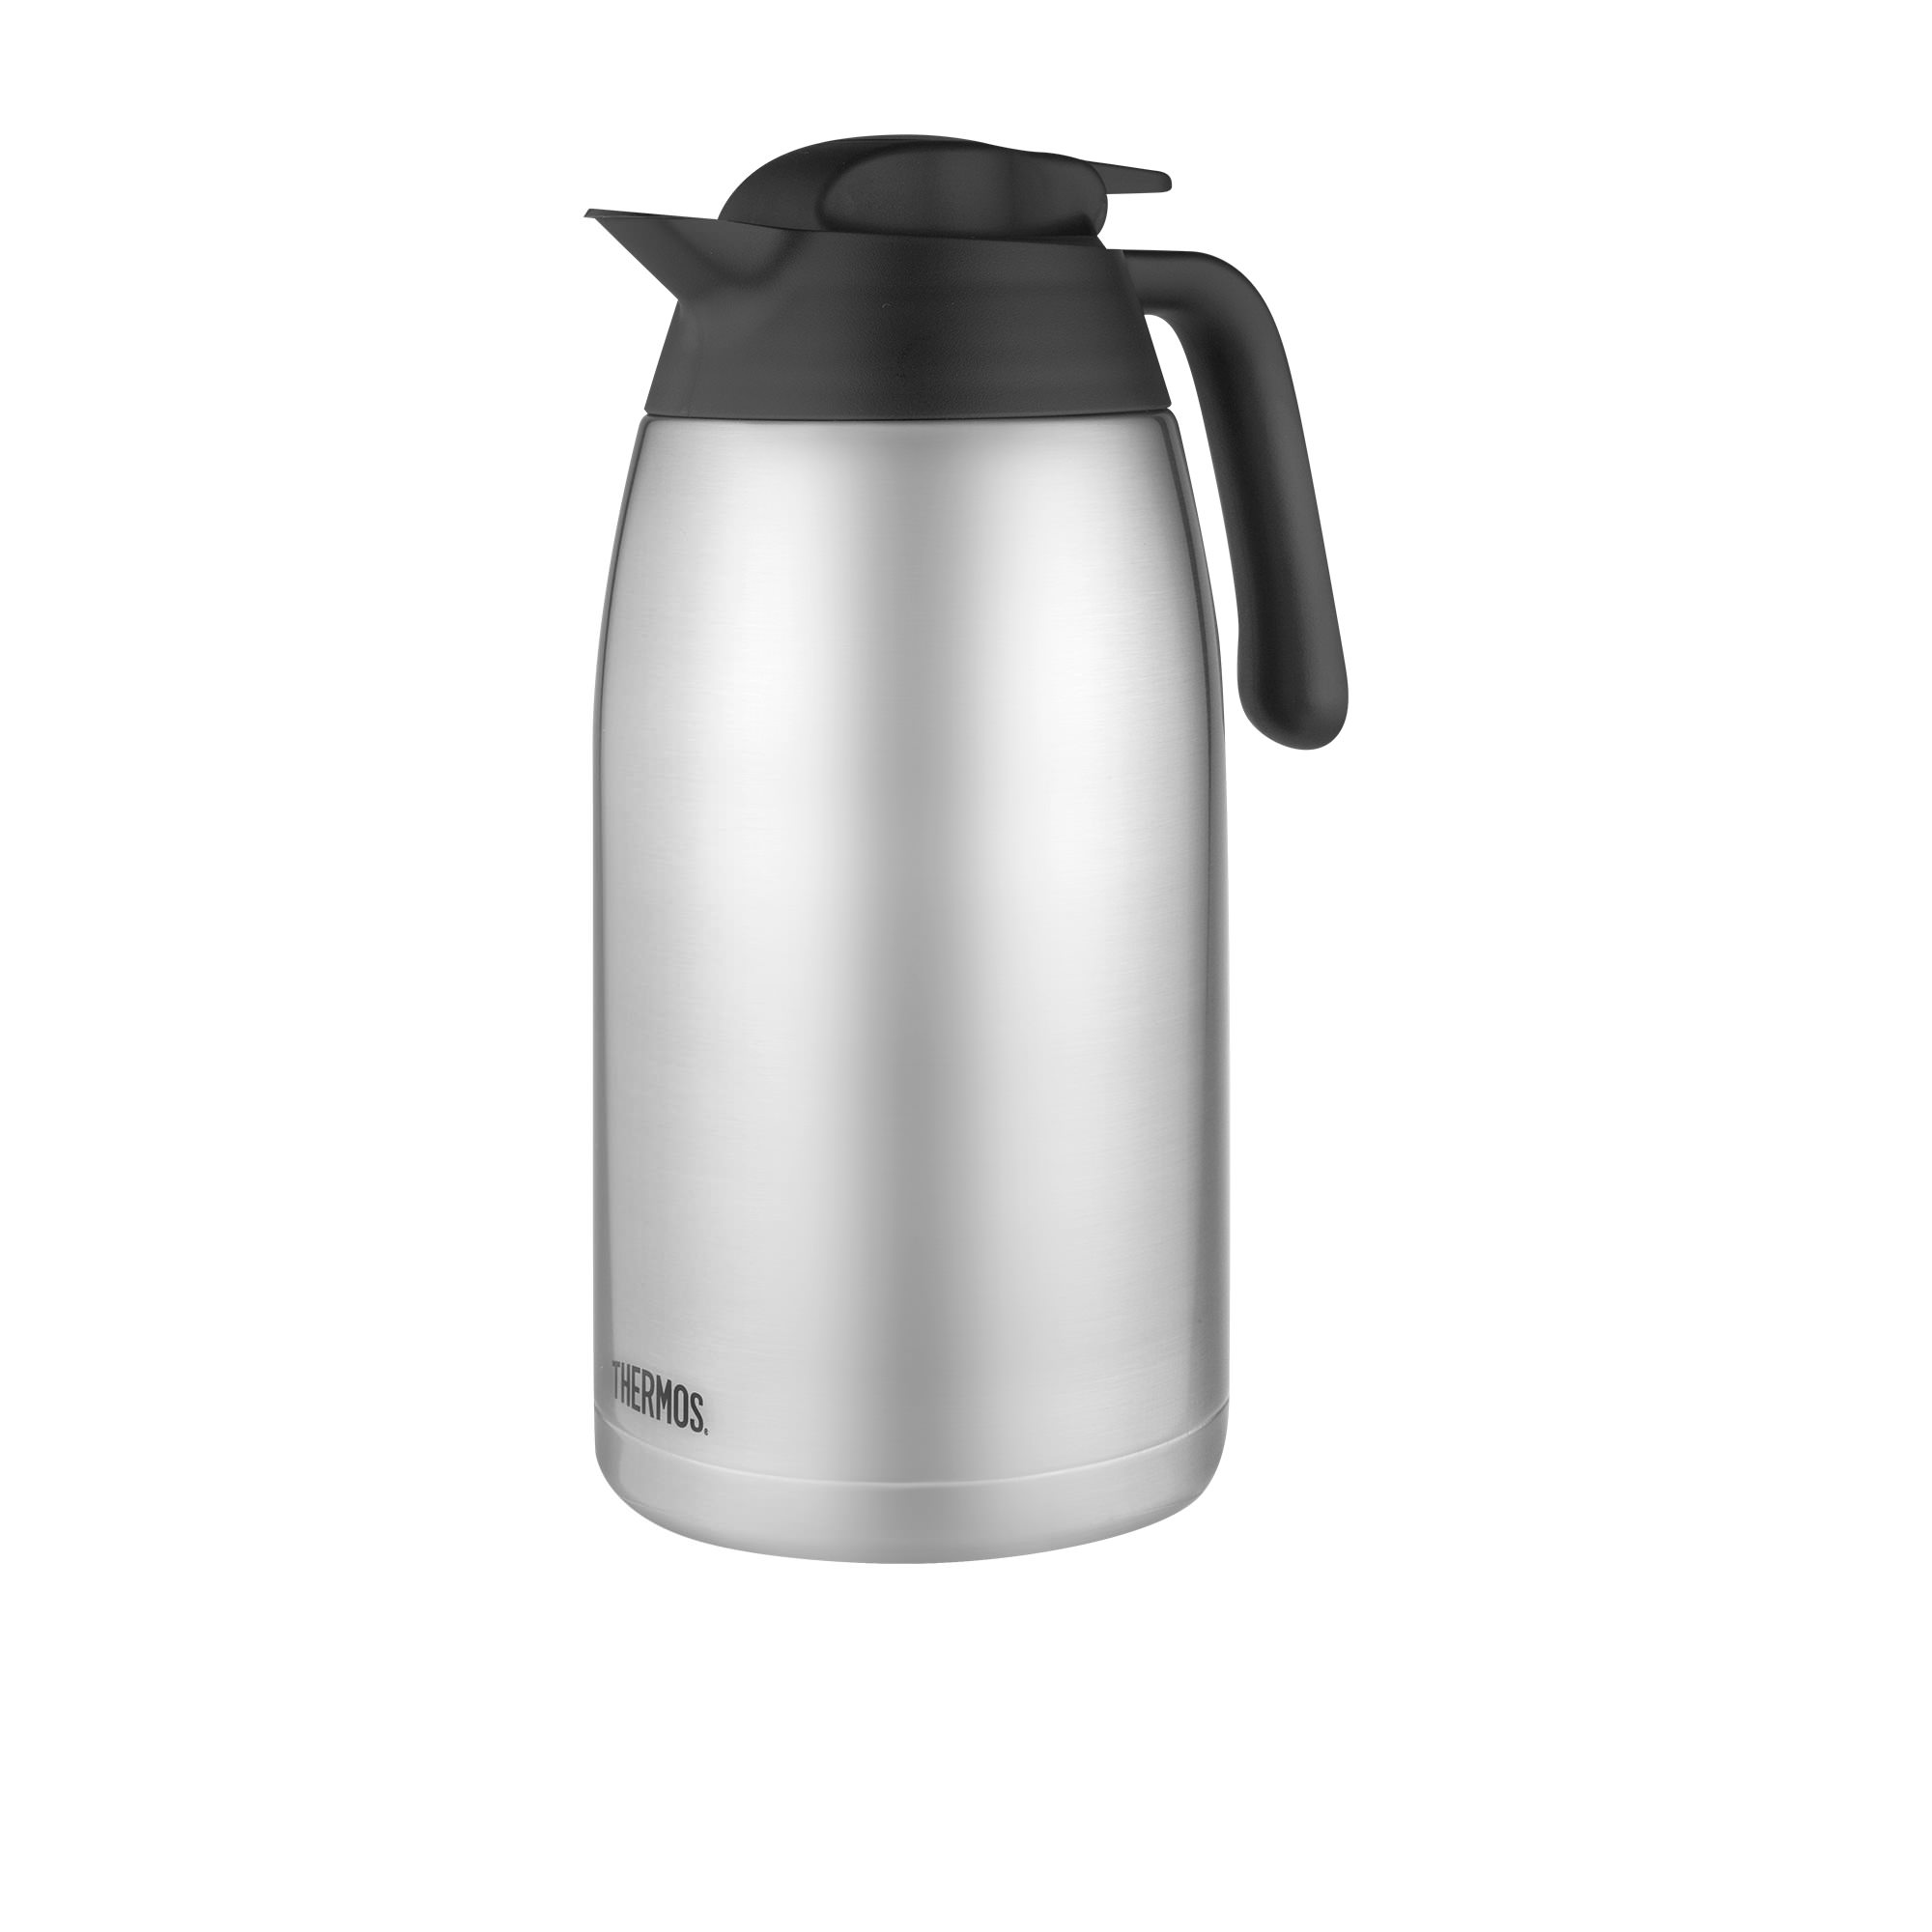 Thermos Vacuum Insulated Carafe 2L Stainless Steel